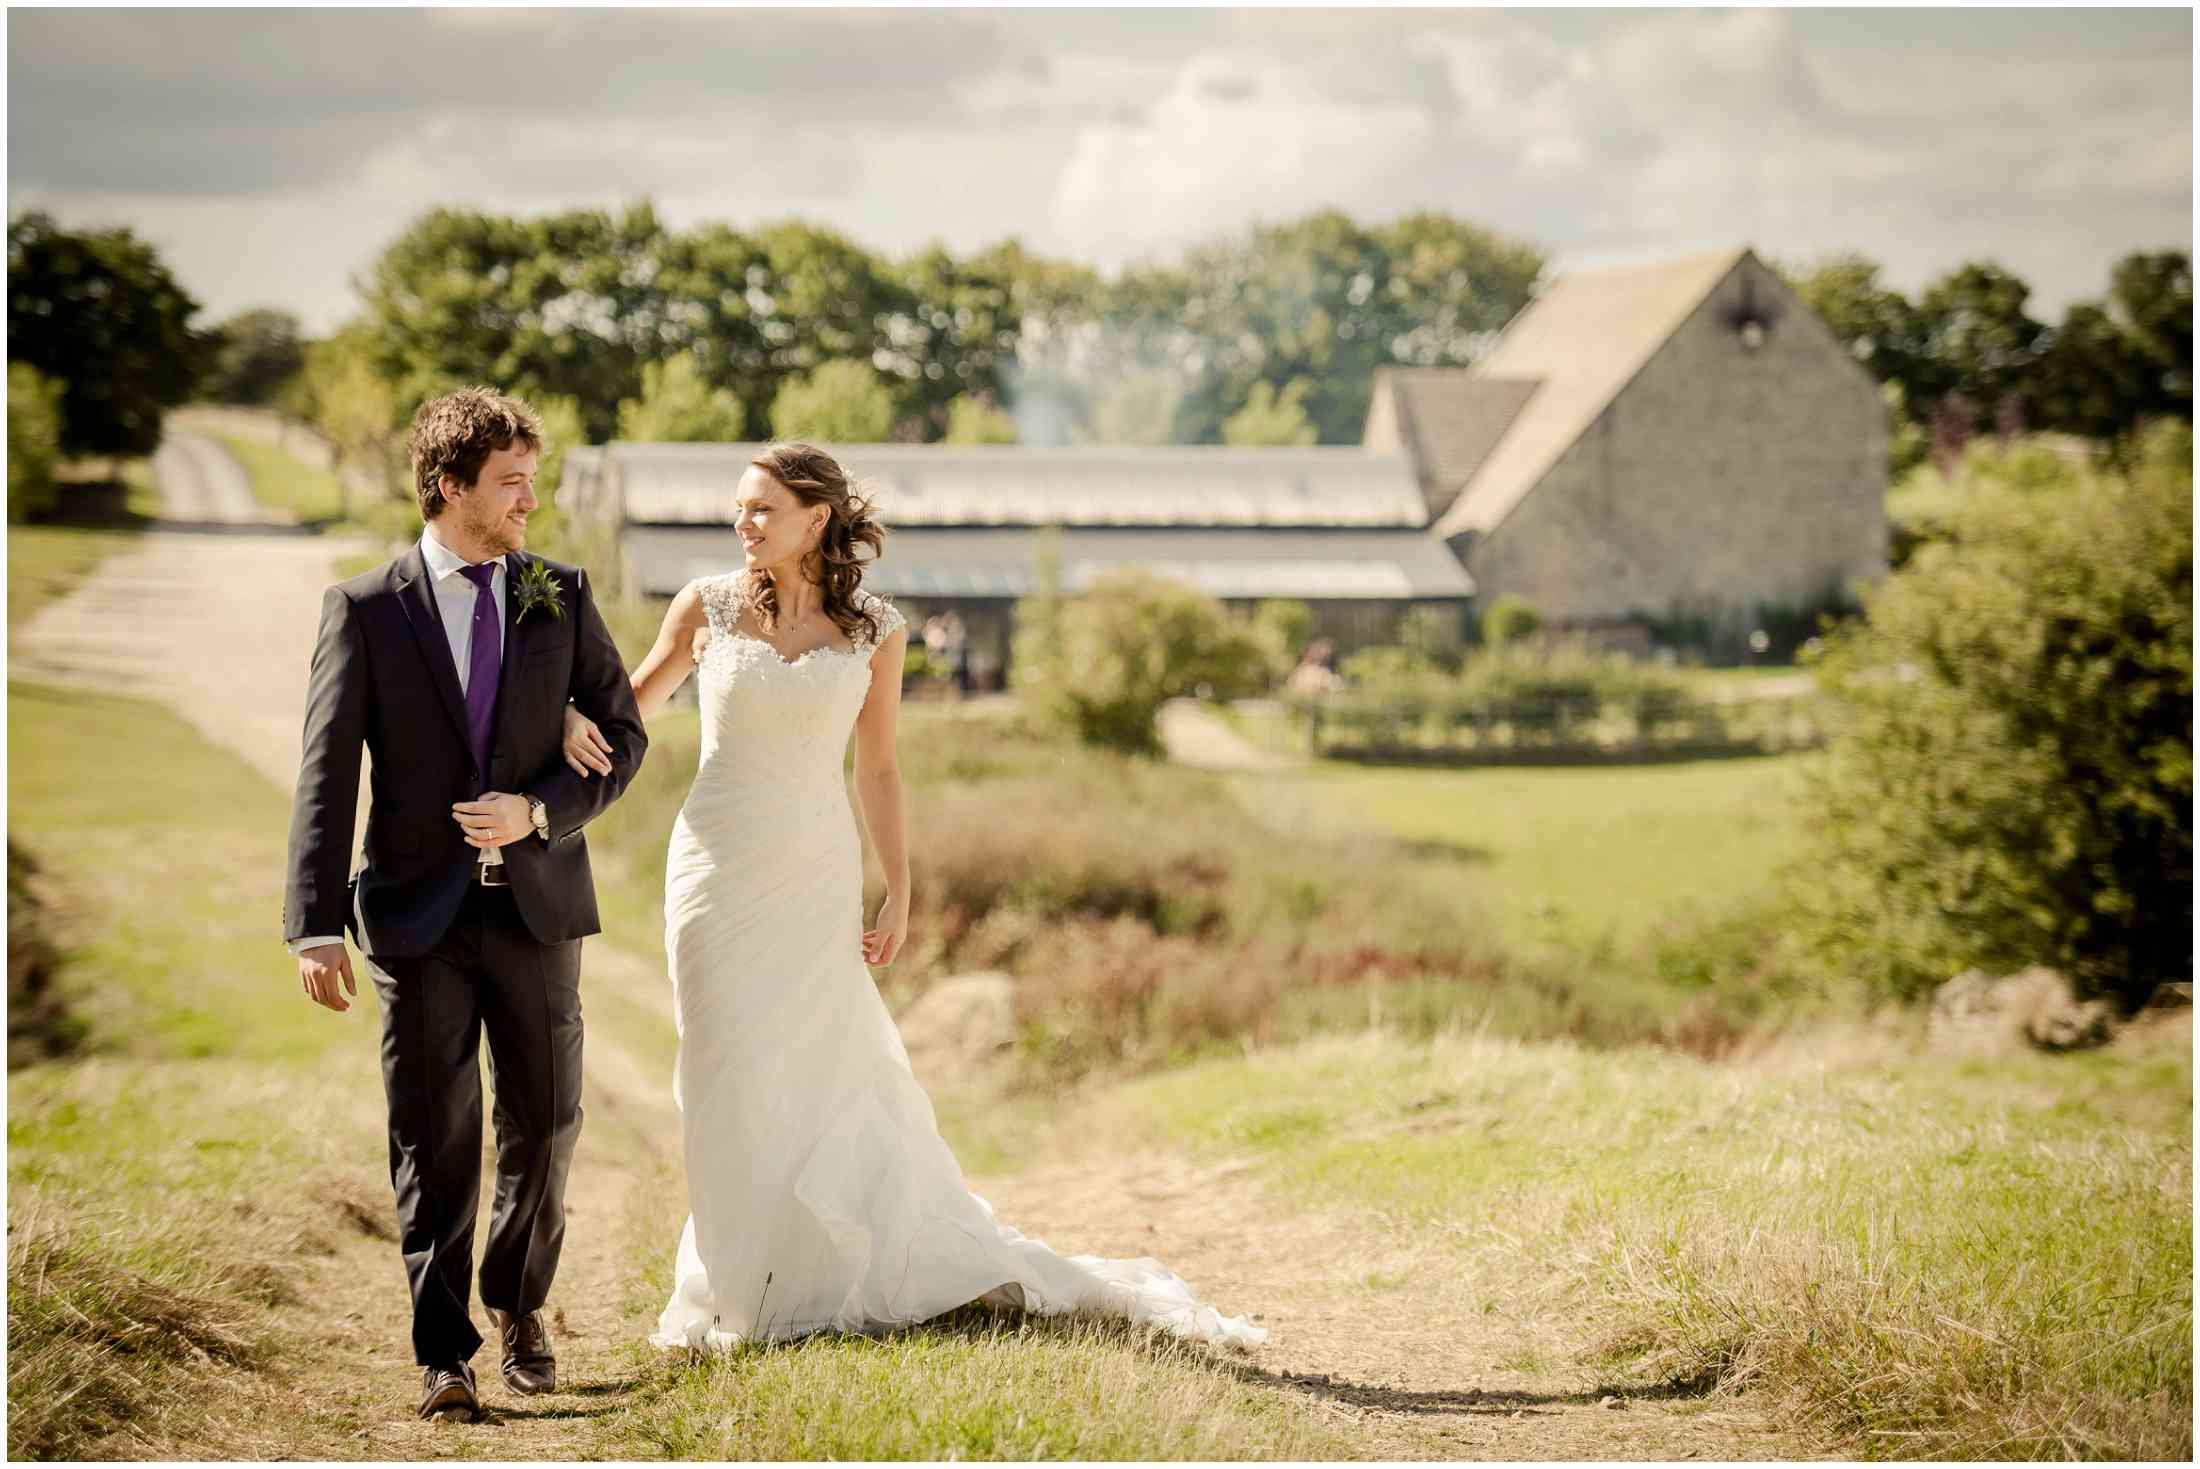 Stone Cripps Barn – Cheltenham Wedding Photography